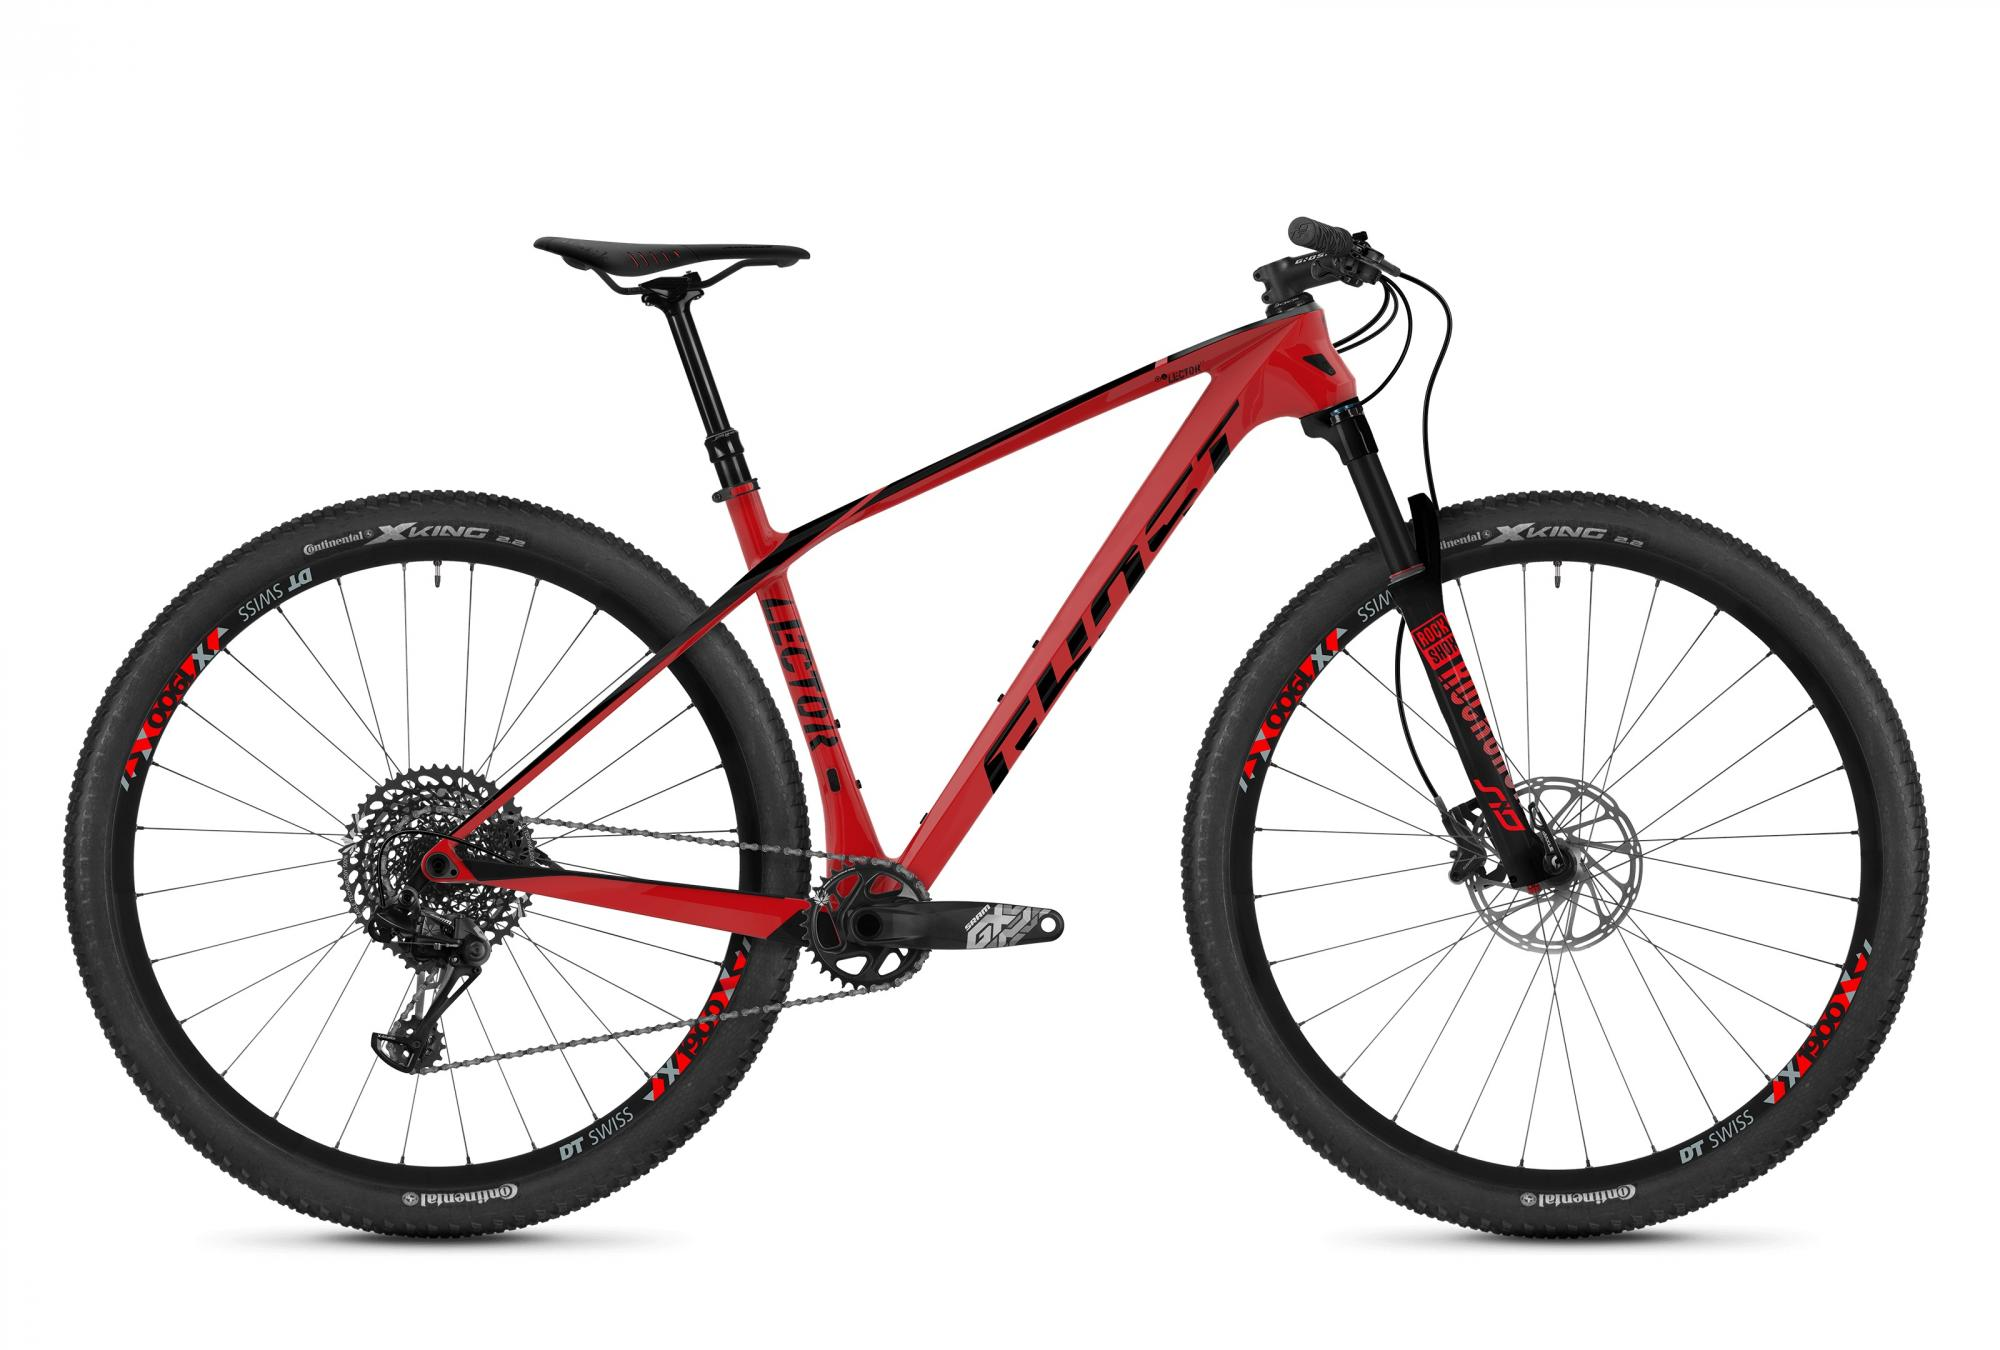 GHOST Lector 5.9 LC riot red / jet black 2019